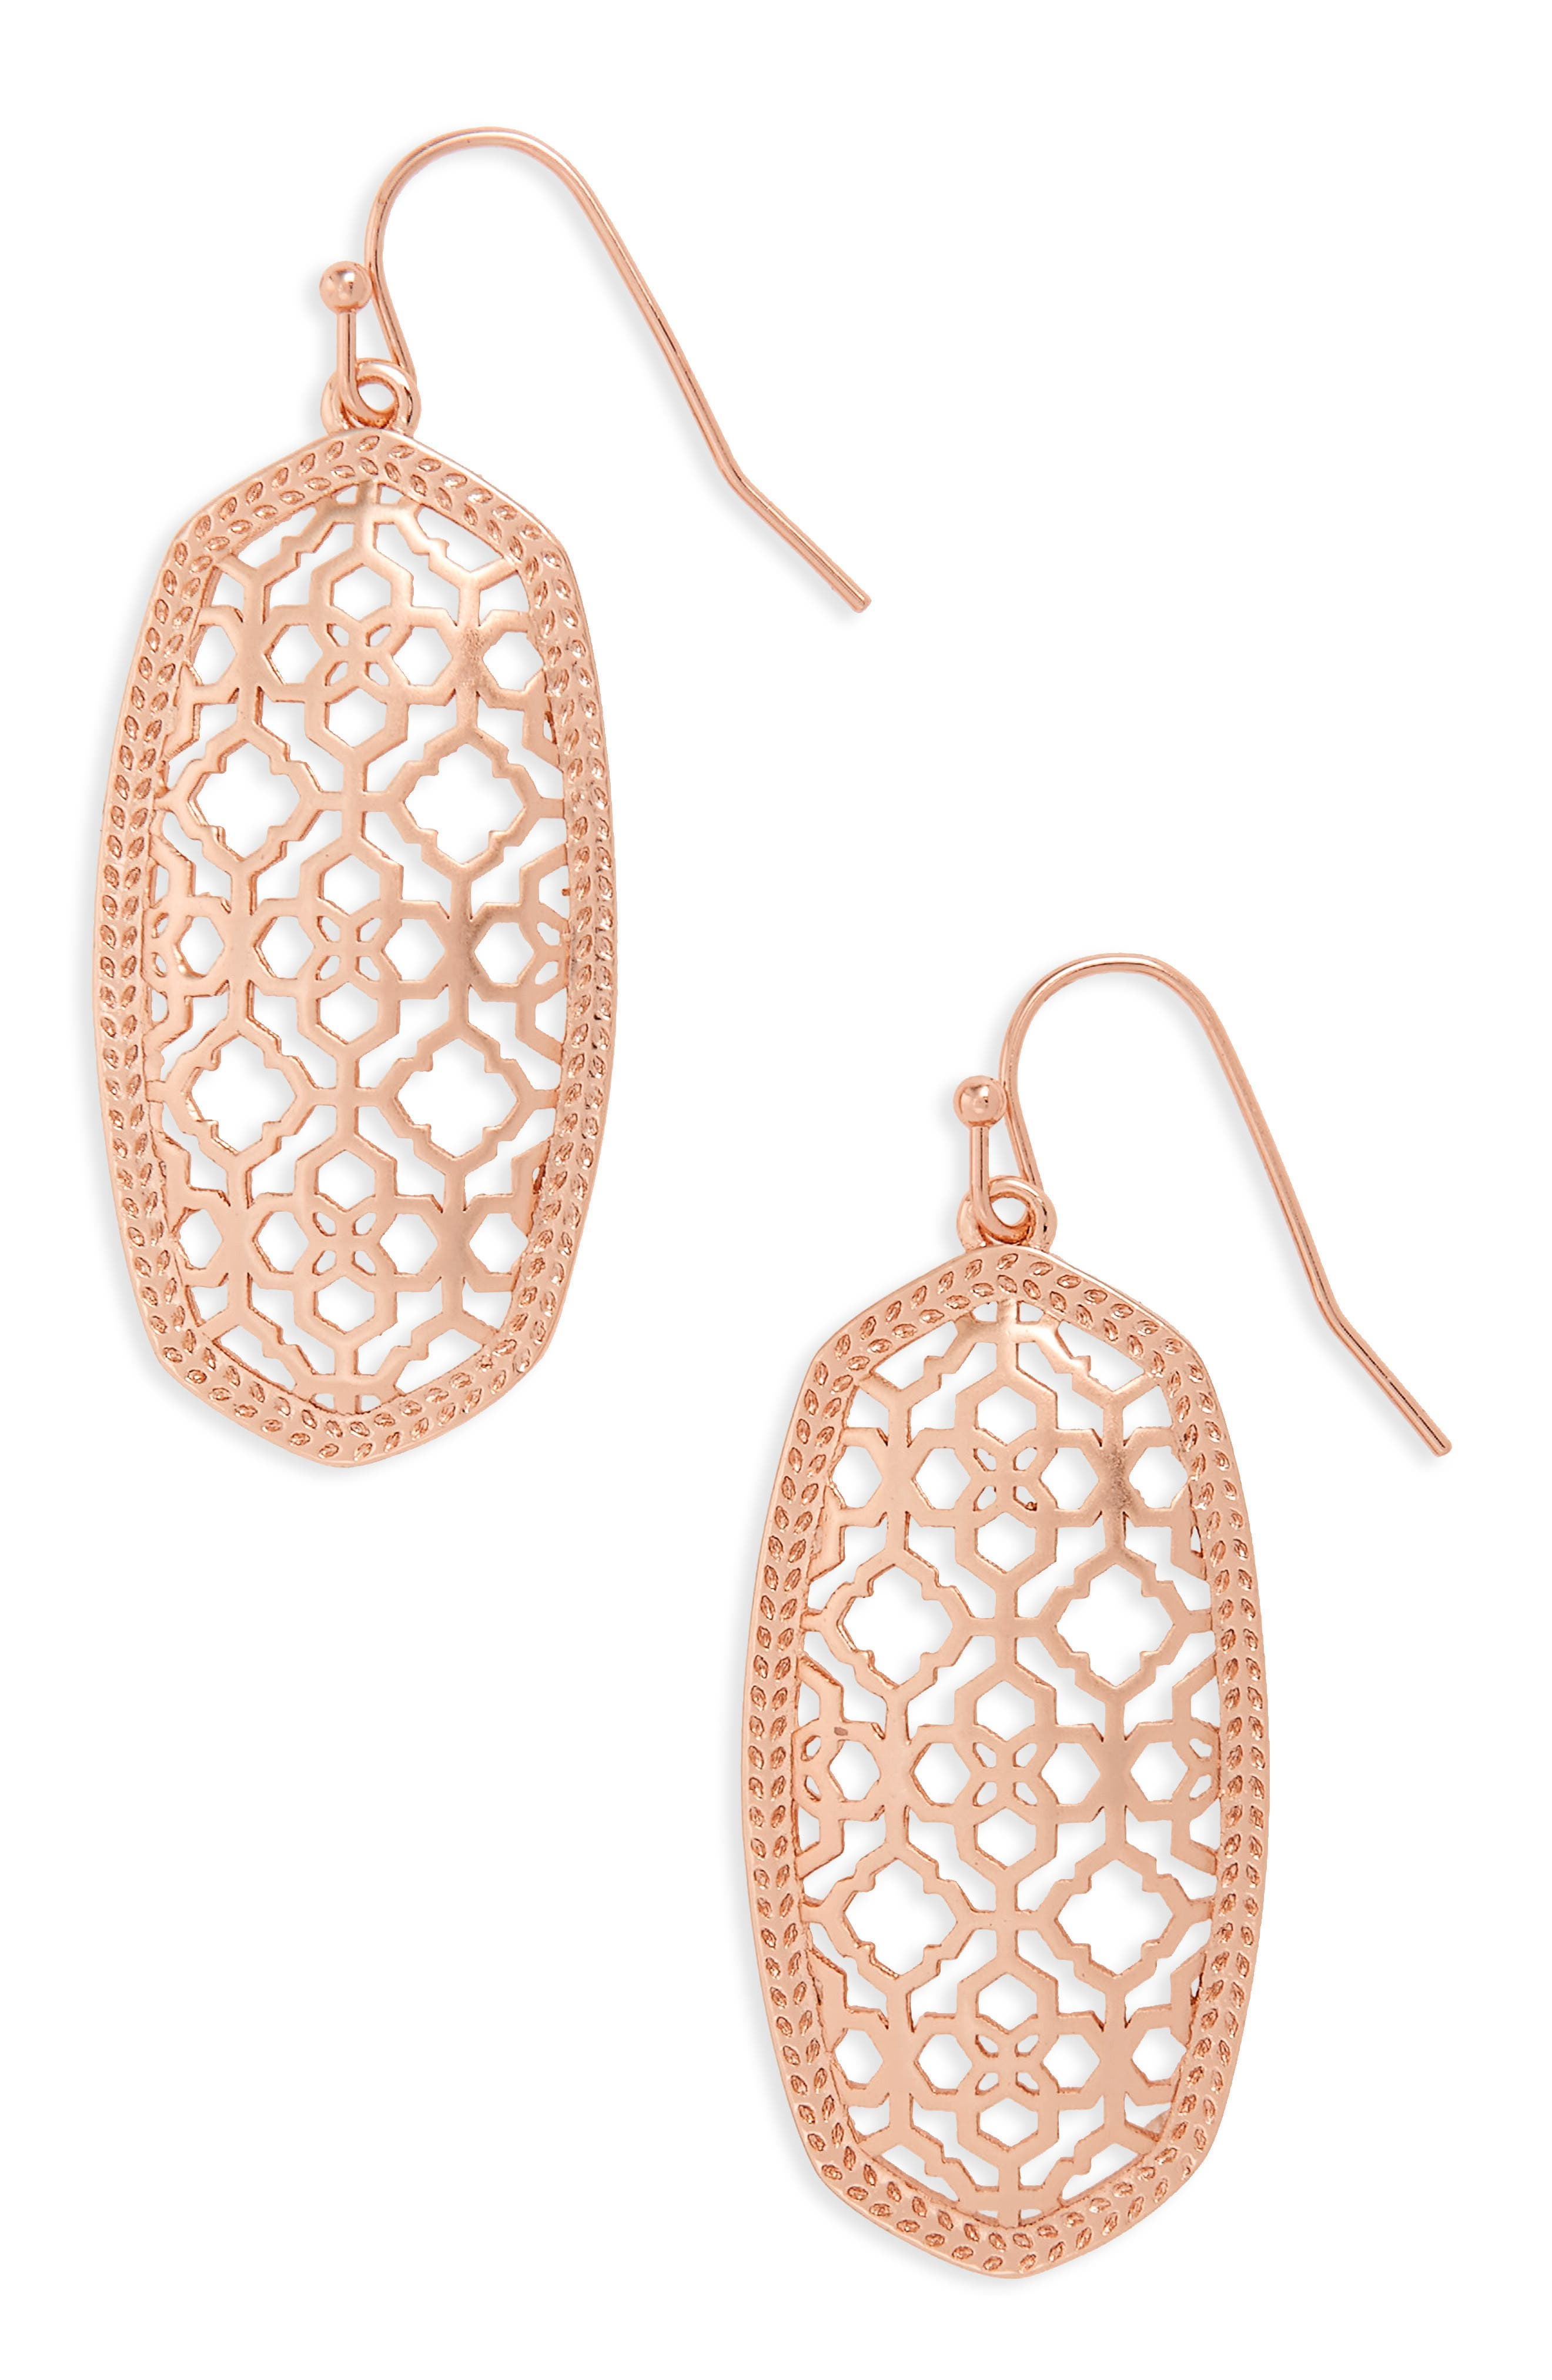 Alternate Image 1 Selected - Kendra Scott Elle Filigree Drop Earrings